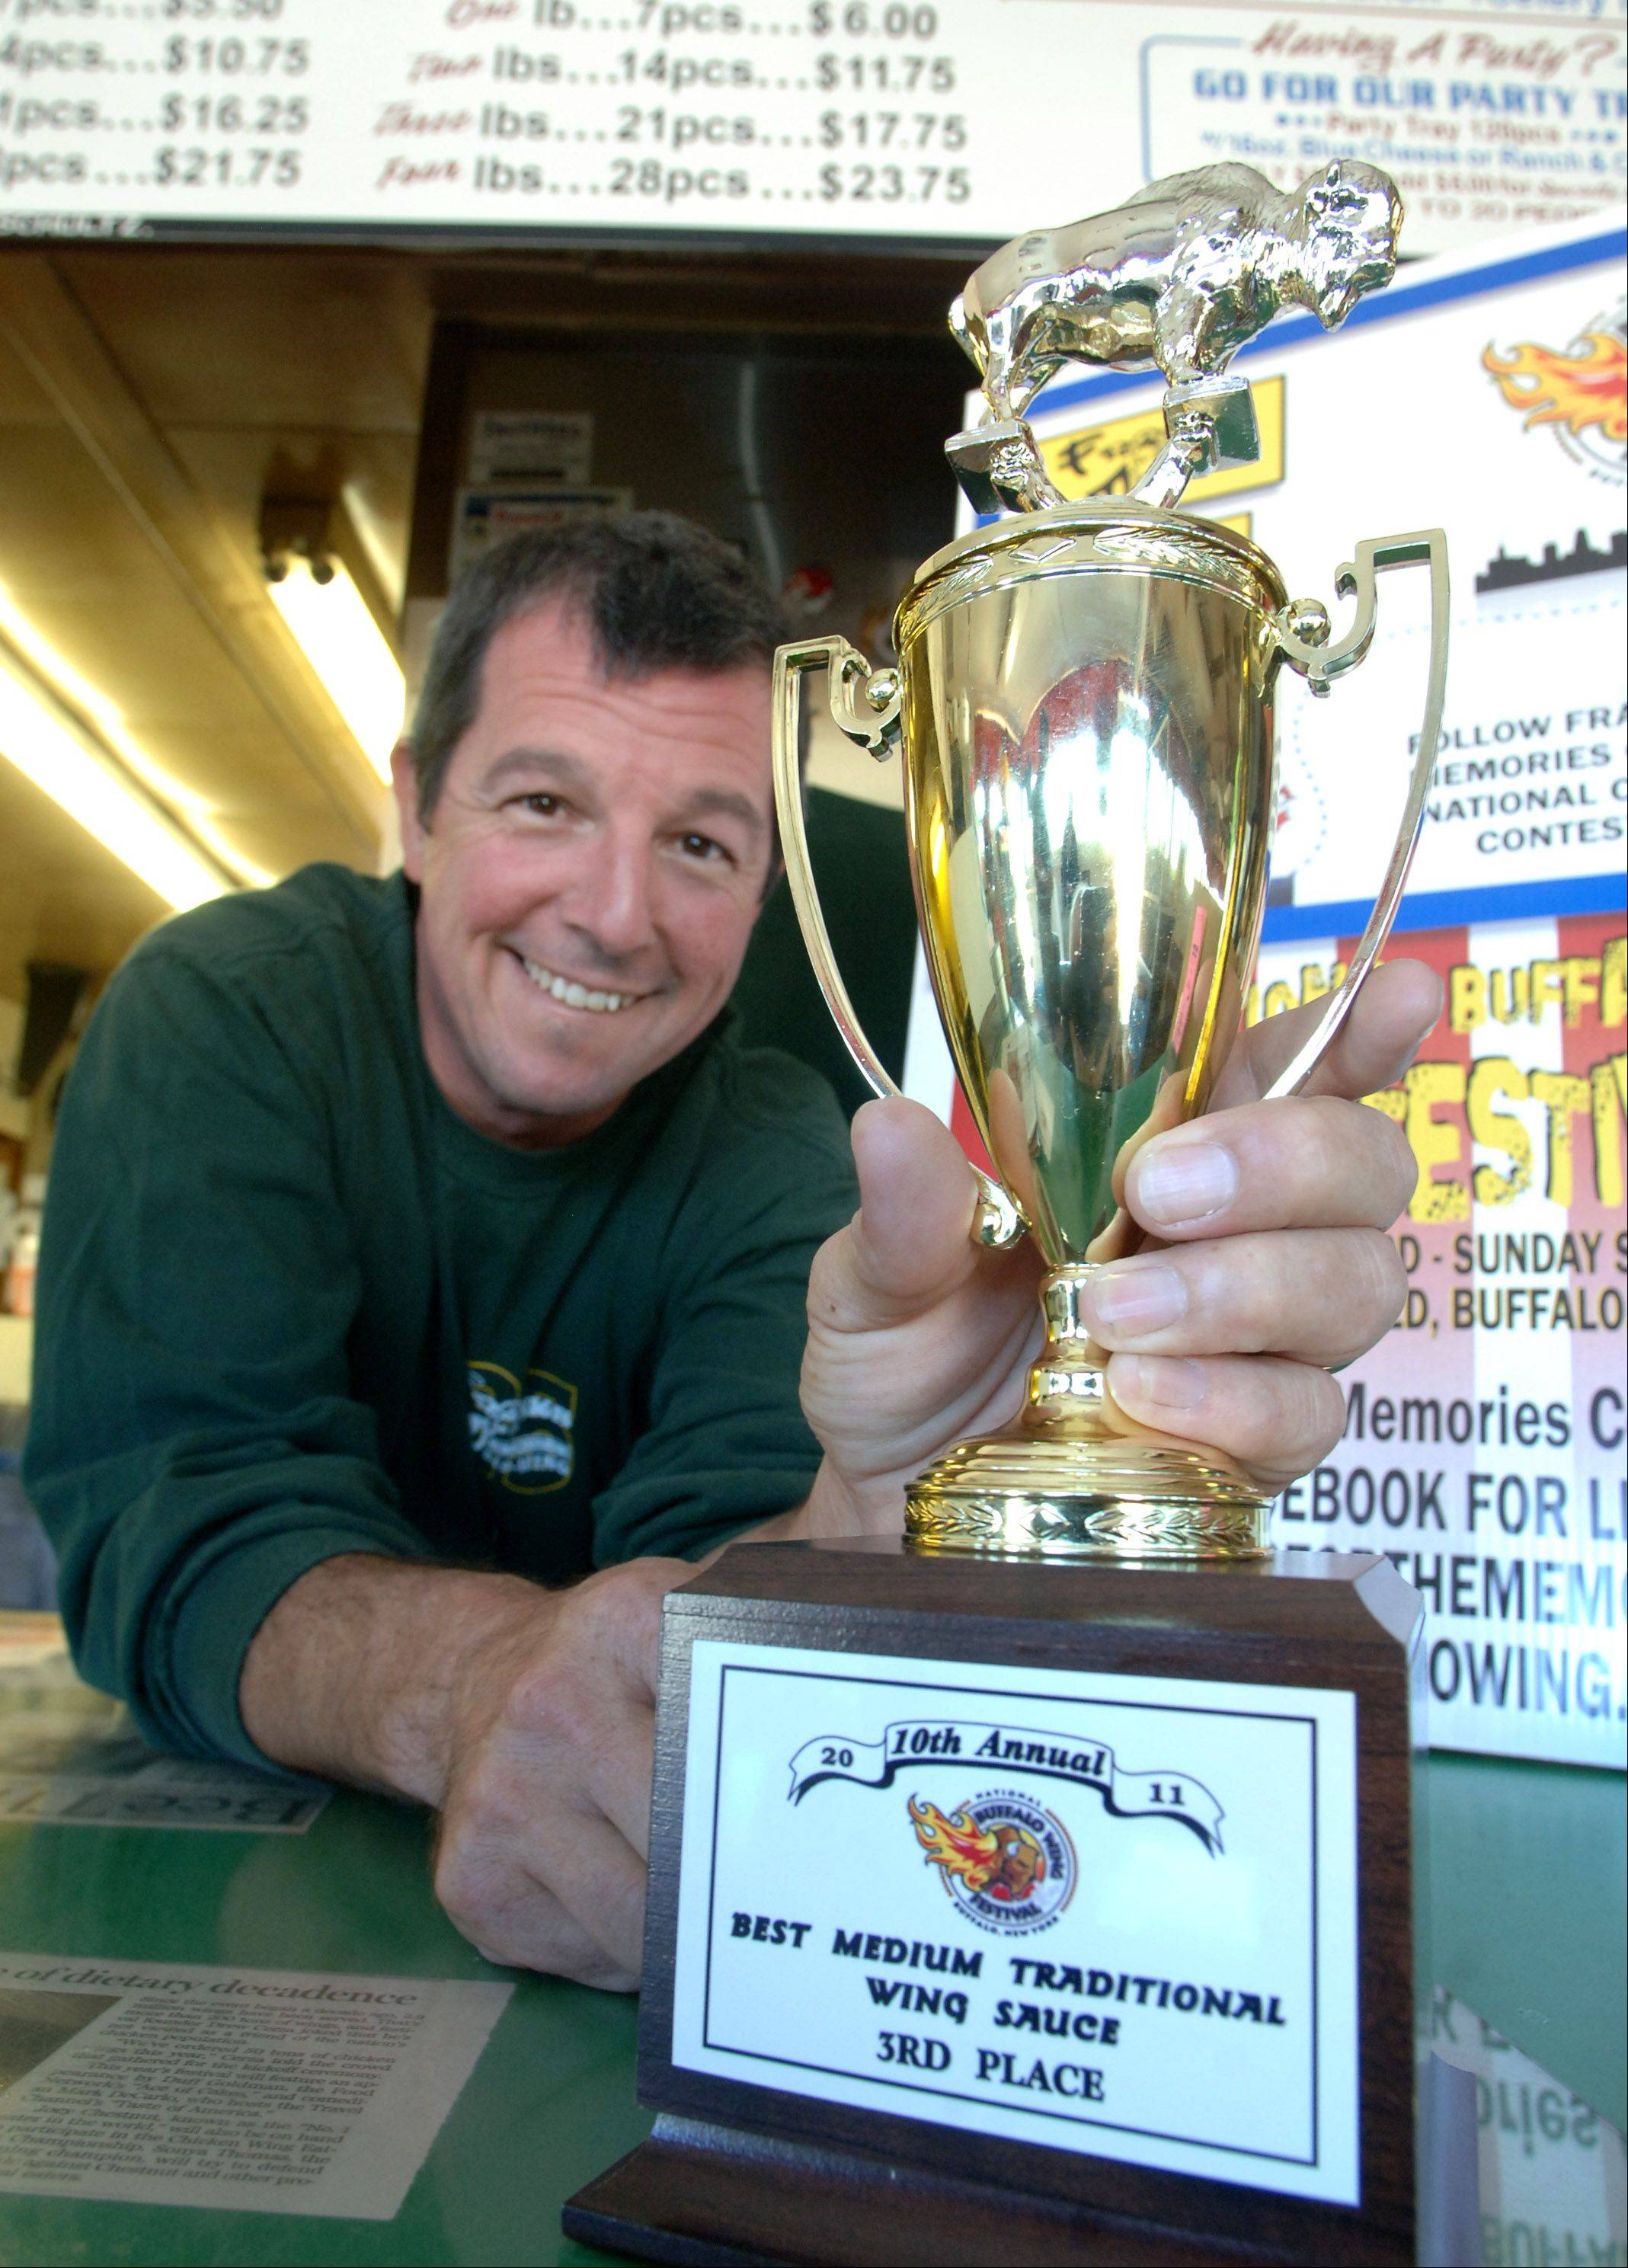 Jim Schultz Jr., owner of Franks for the Memories in Mundelein, with his third place trophy in the Best Medium Traditional Wing Sauce category from the national Buffalo Wing Festival in New York.